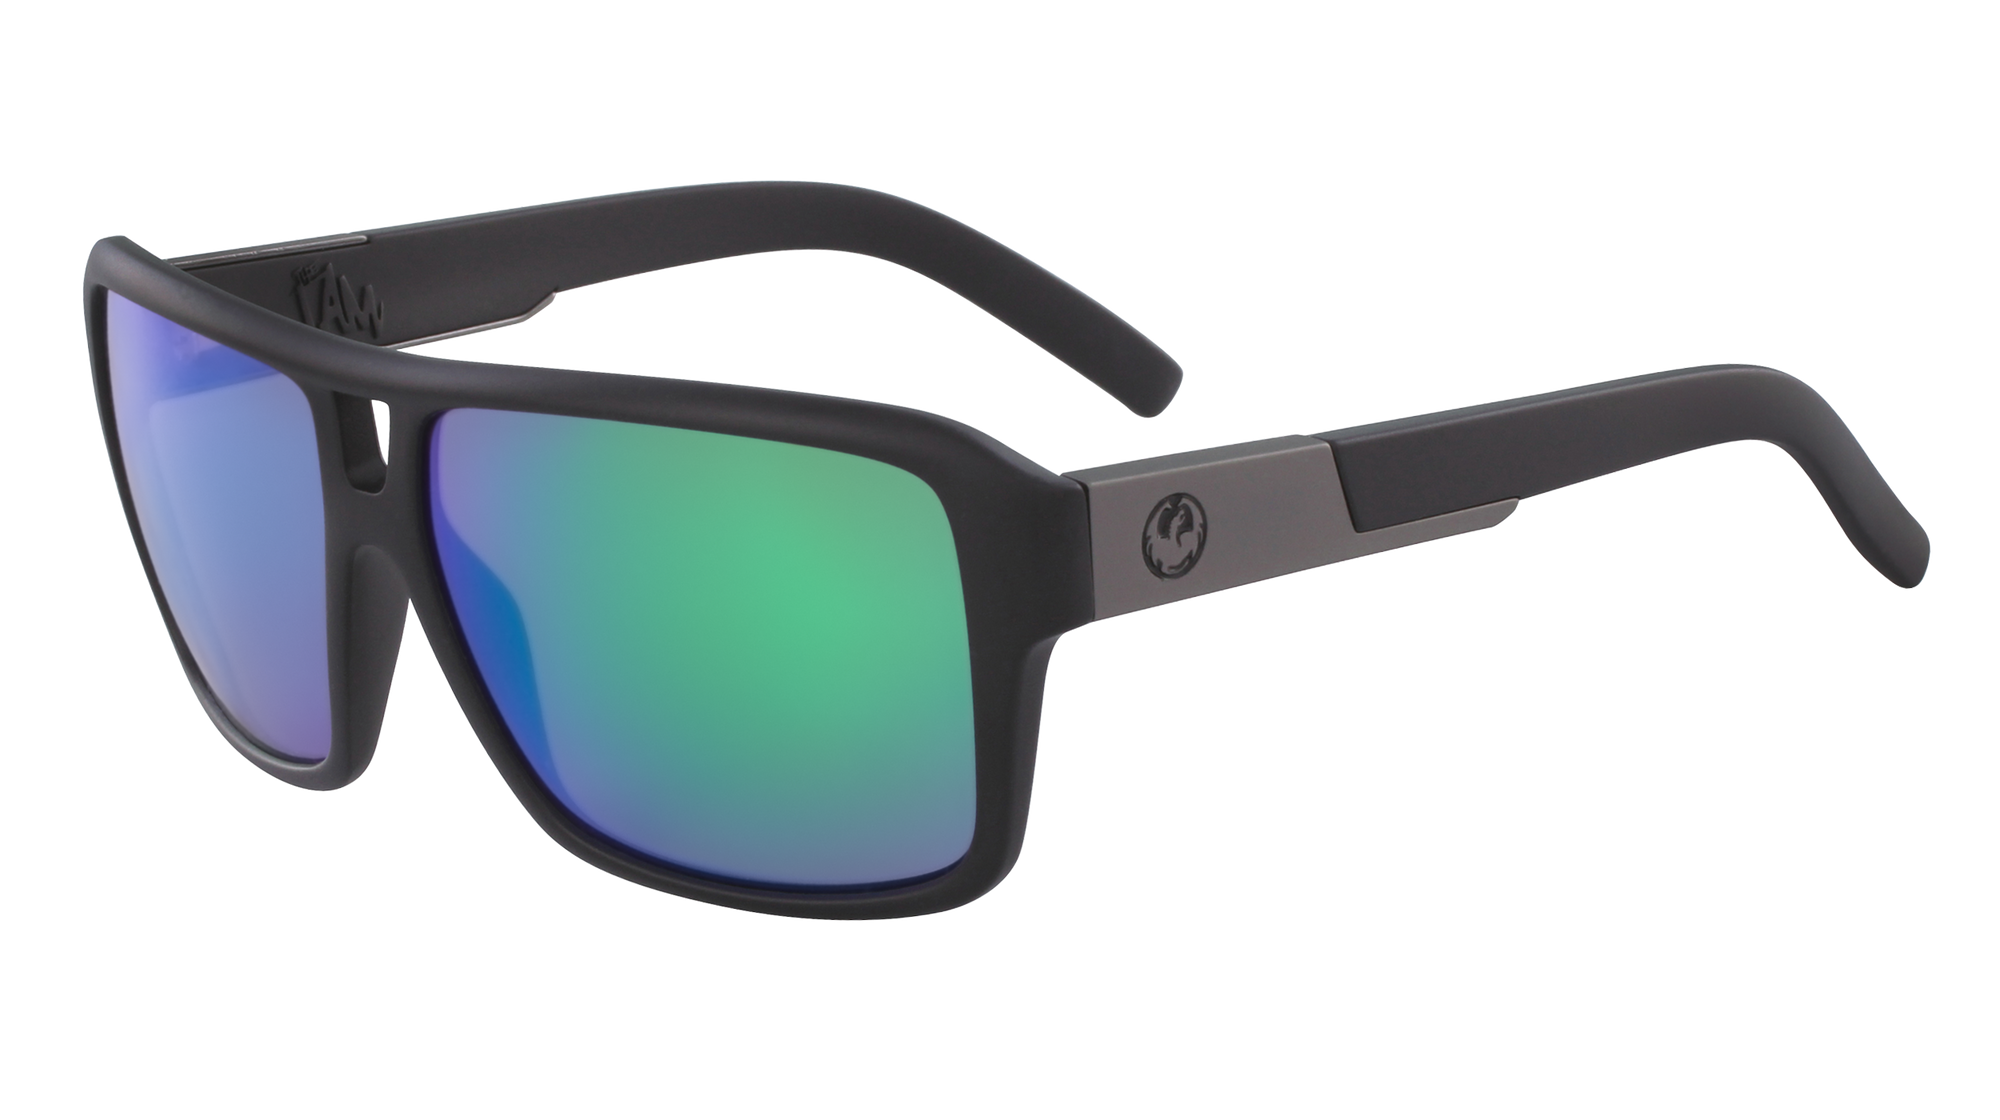 Dragon The Jam Matte Black/Green Ionised - Board Store Dragon AllianceSunglasses